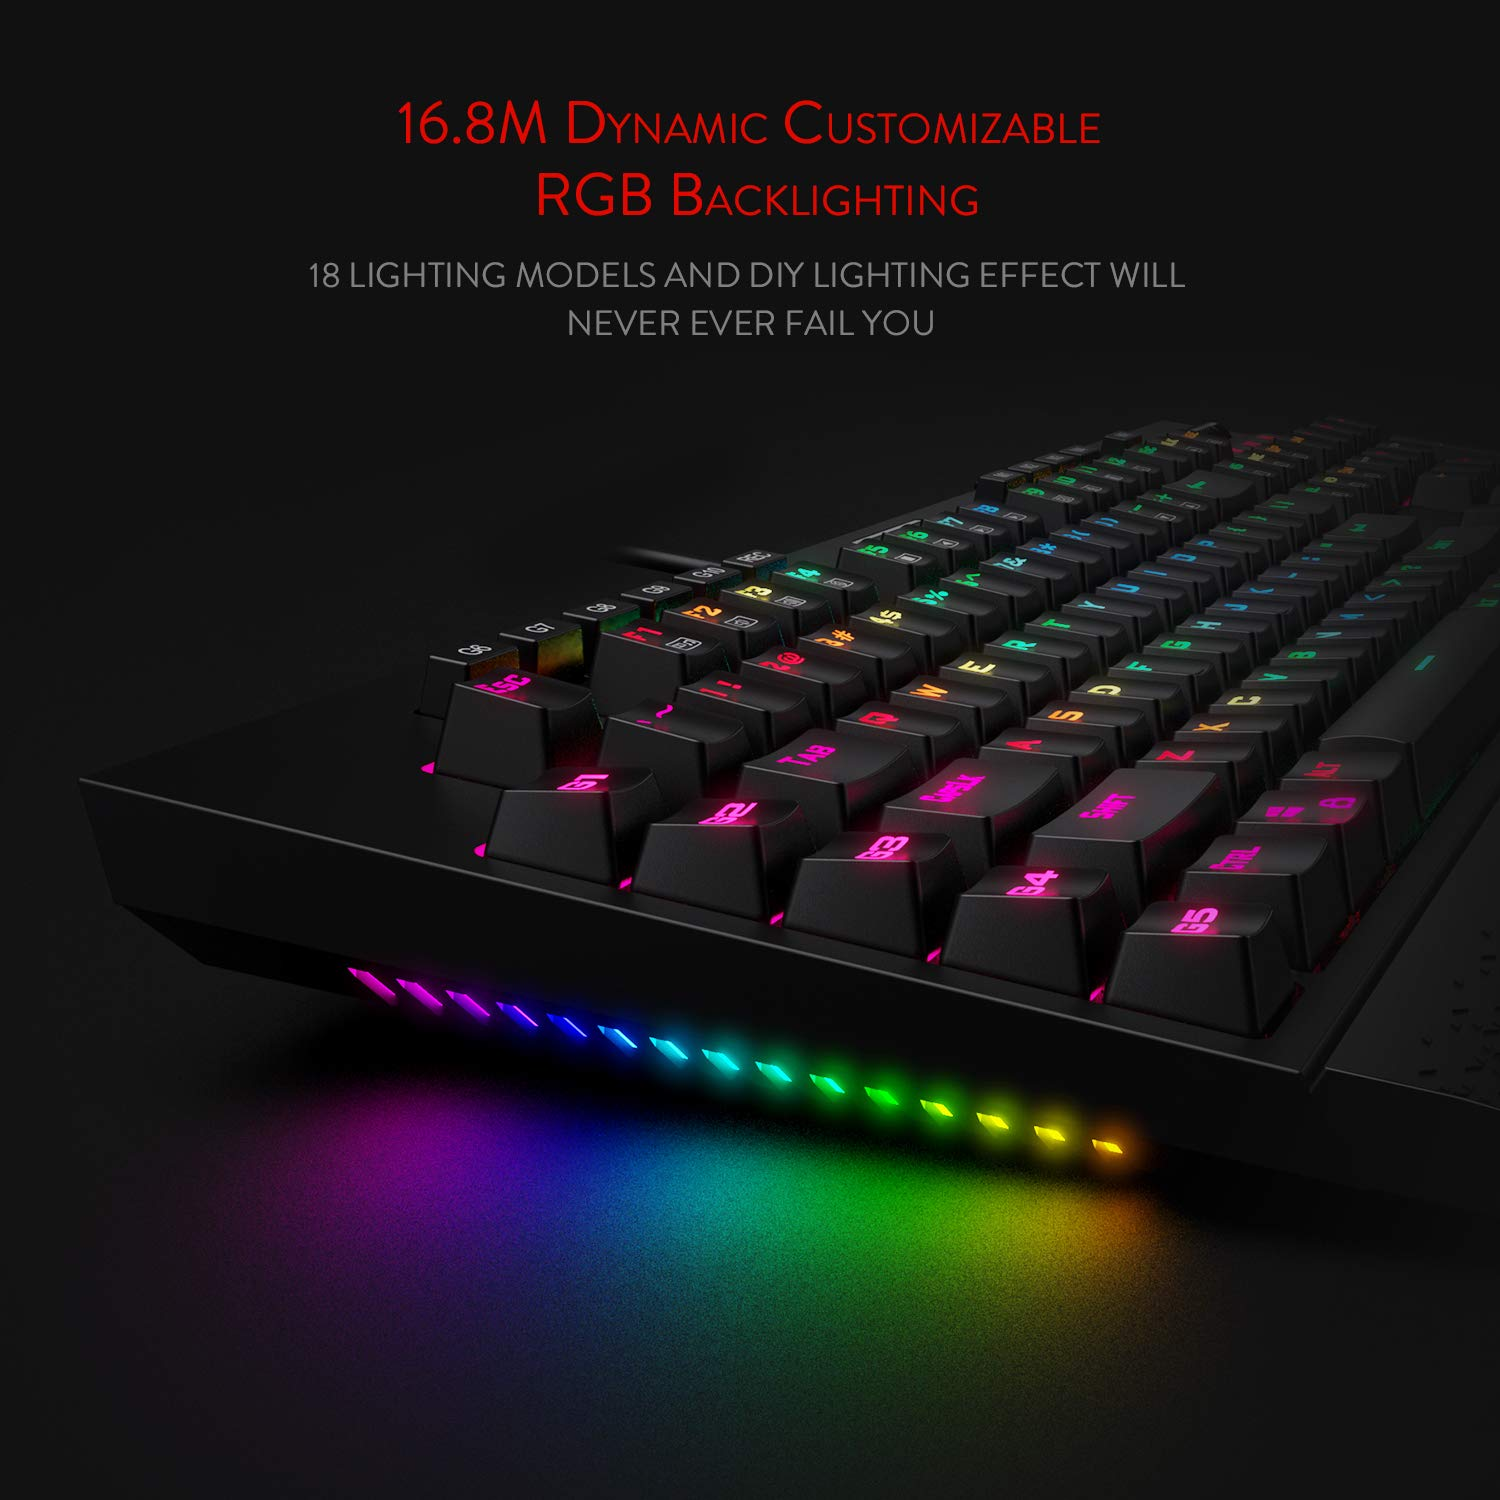 Redragon K586-PRO Brahma RGB Mechanical Gaming Keyboard with Fast Optical Blue Switches, 10 Dedicated Macro Keys, Convenient Media Control, and Detachable Wrist Rest